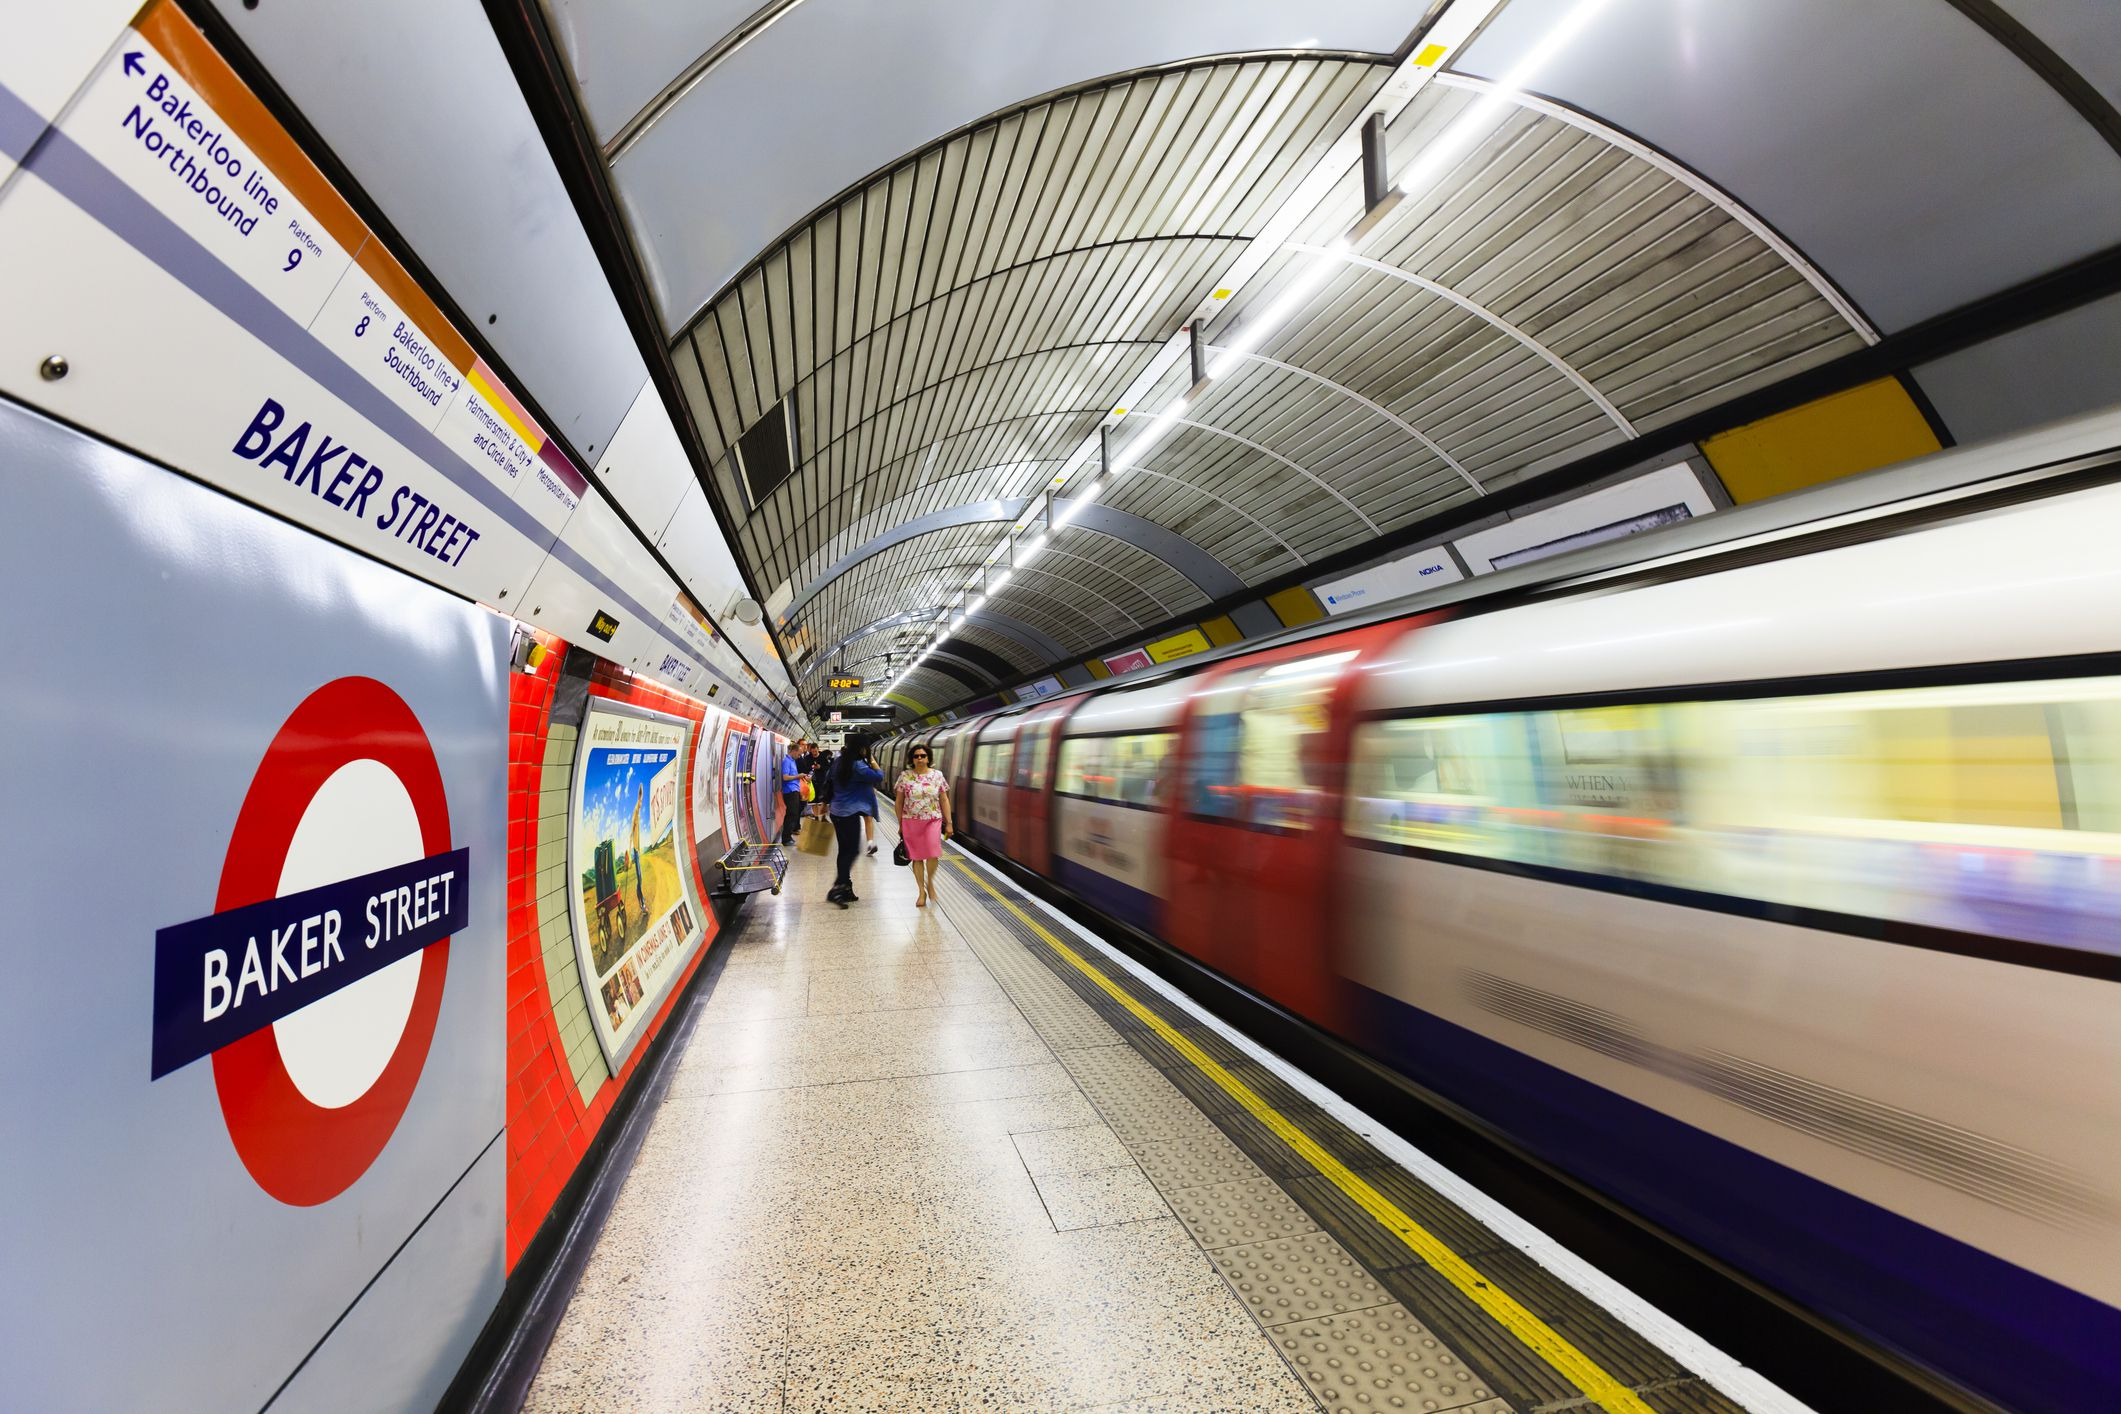 Using Contactless Payment On The London Underground